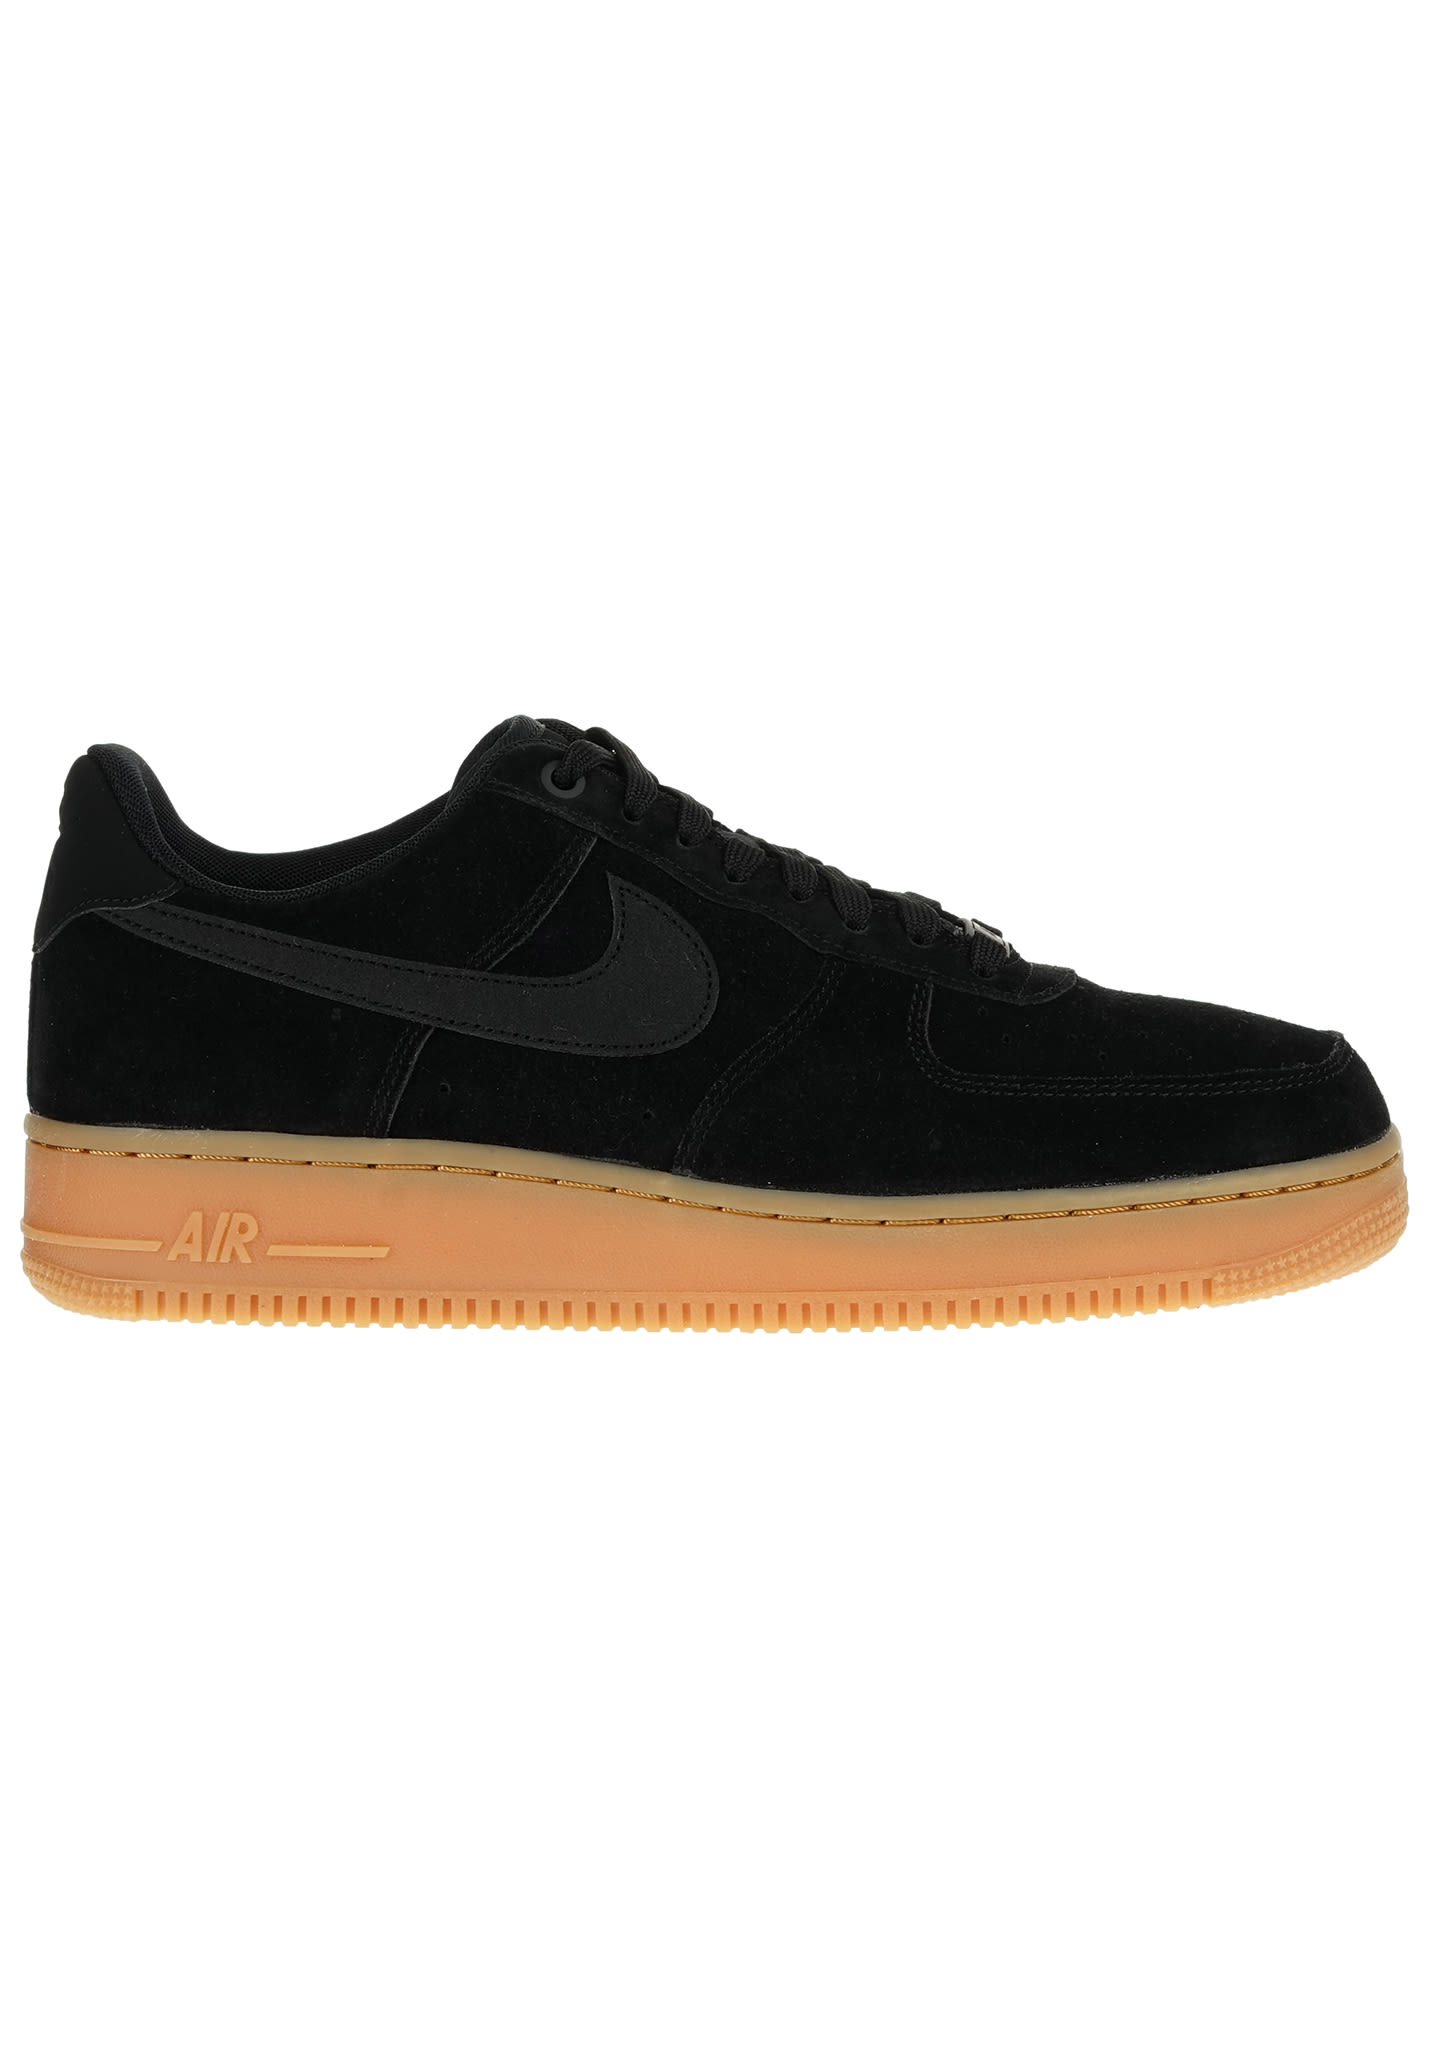 super popular a2e08 64da5 NIKE SPORTSWEAR Air Force 1  07 Lv8 Suede - Sneaker für Herren - Schwarz -  Planet Sports